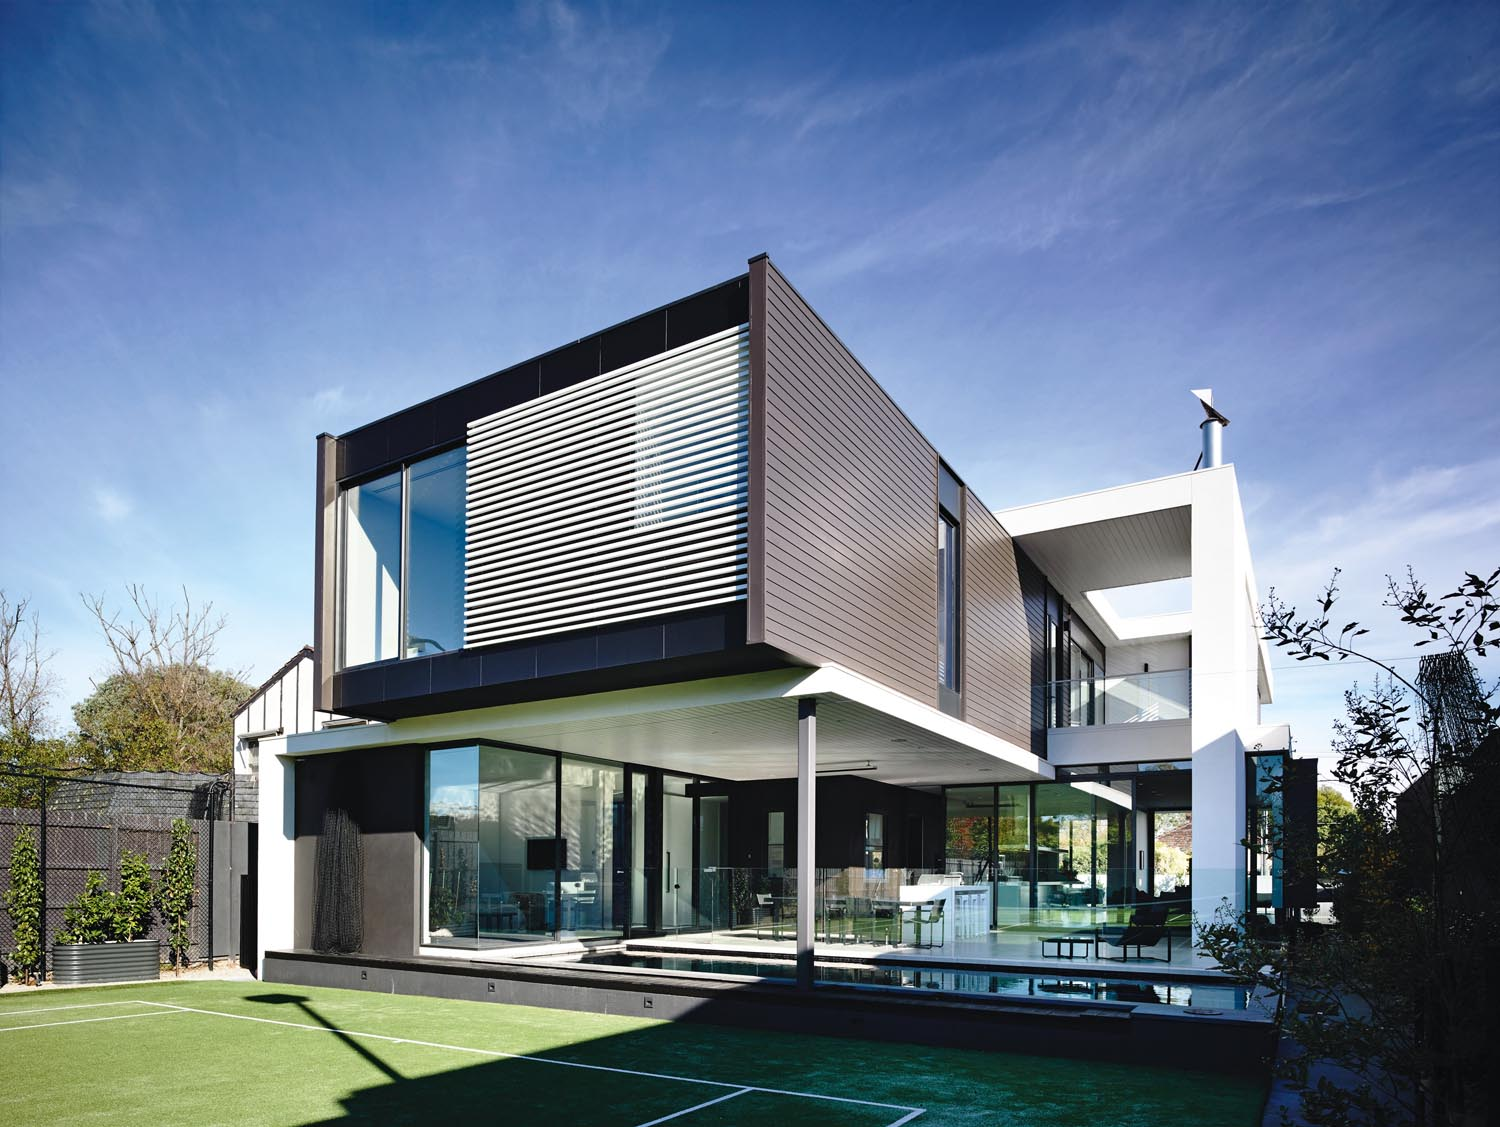 Grand designs australia south melbourne statement for Grand design homes